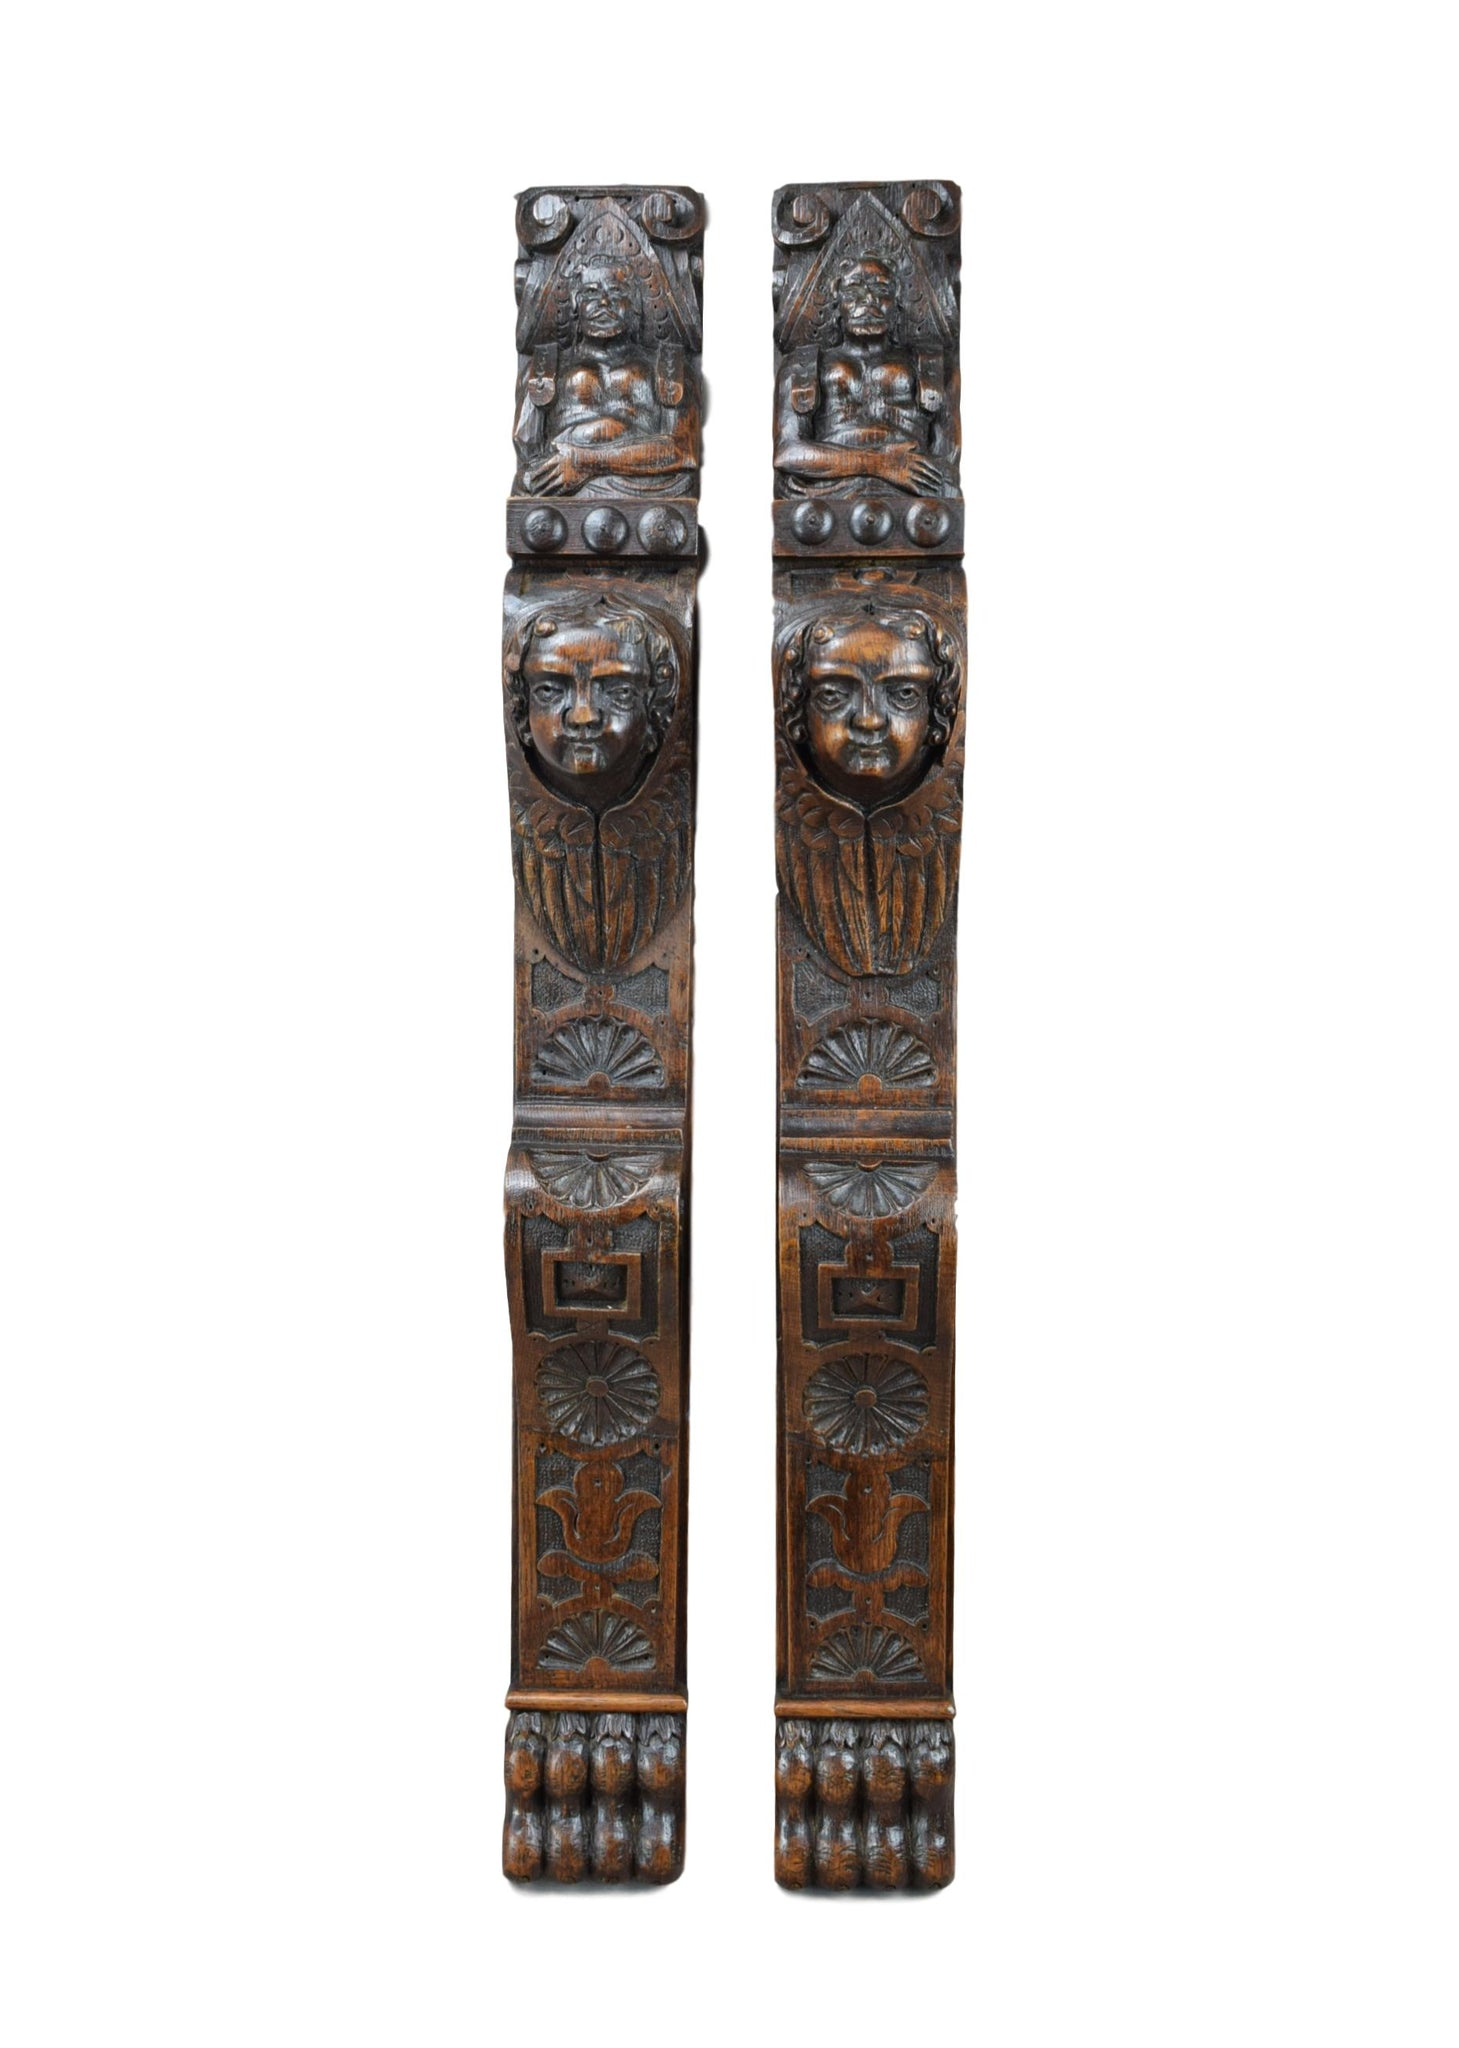 Cherub Pair of Posts Pillars - Charmantiques